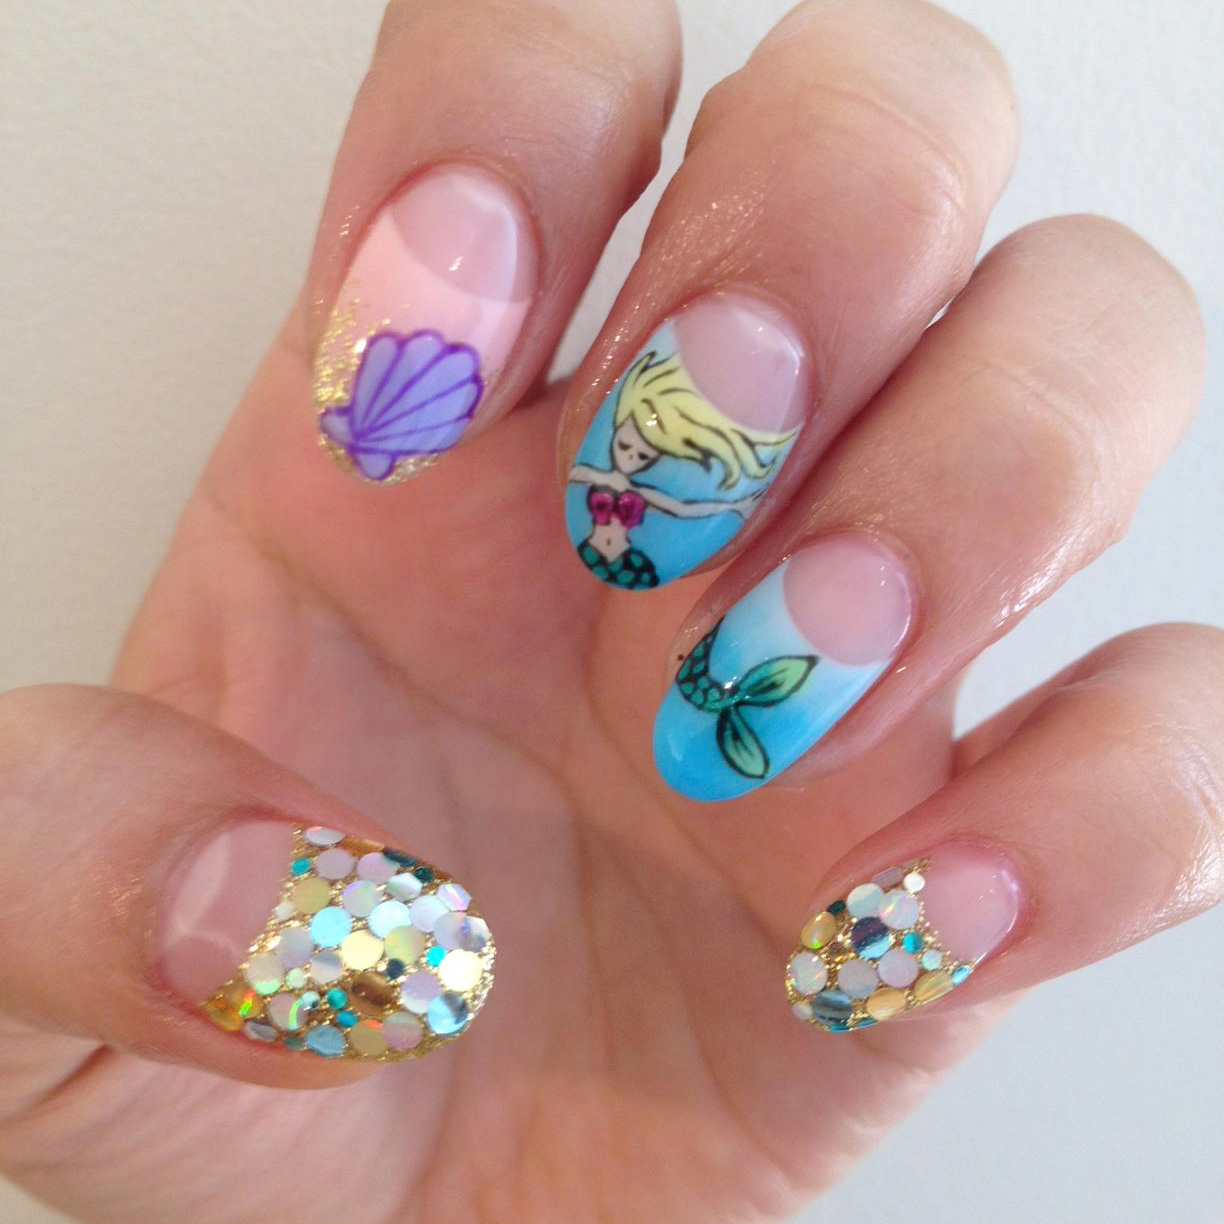 Nail Art Tutorial: Mermaid Dreams